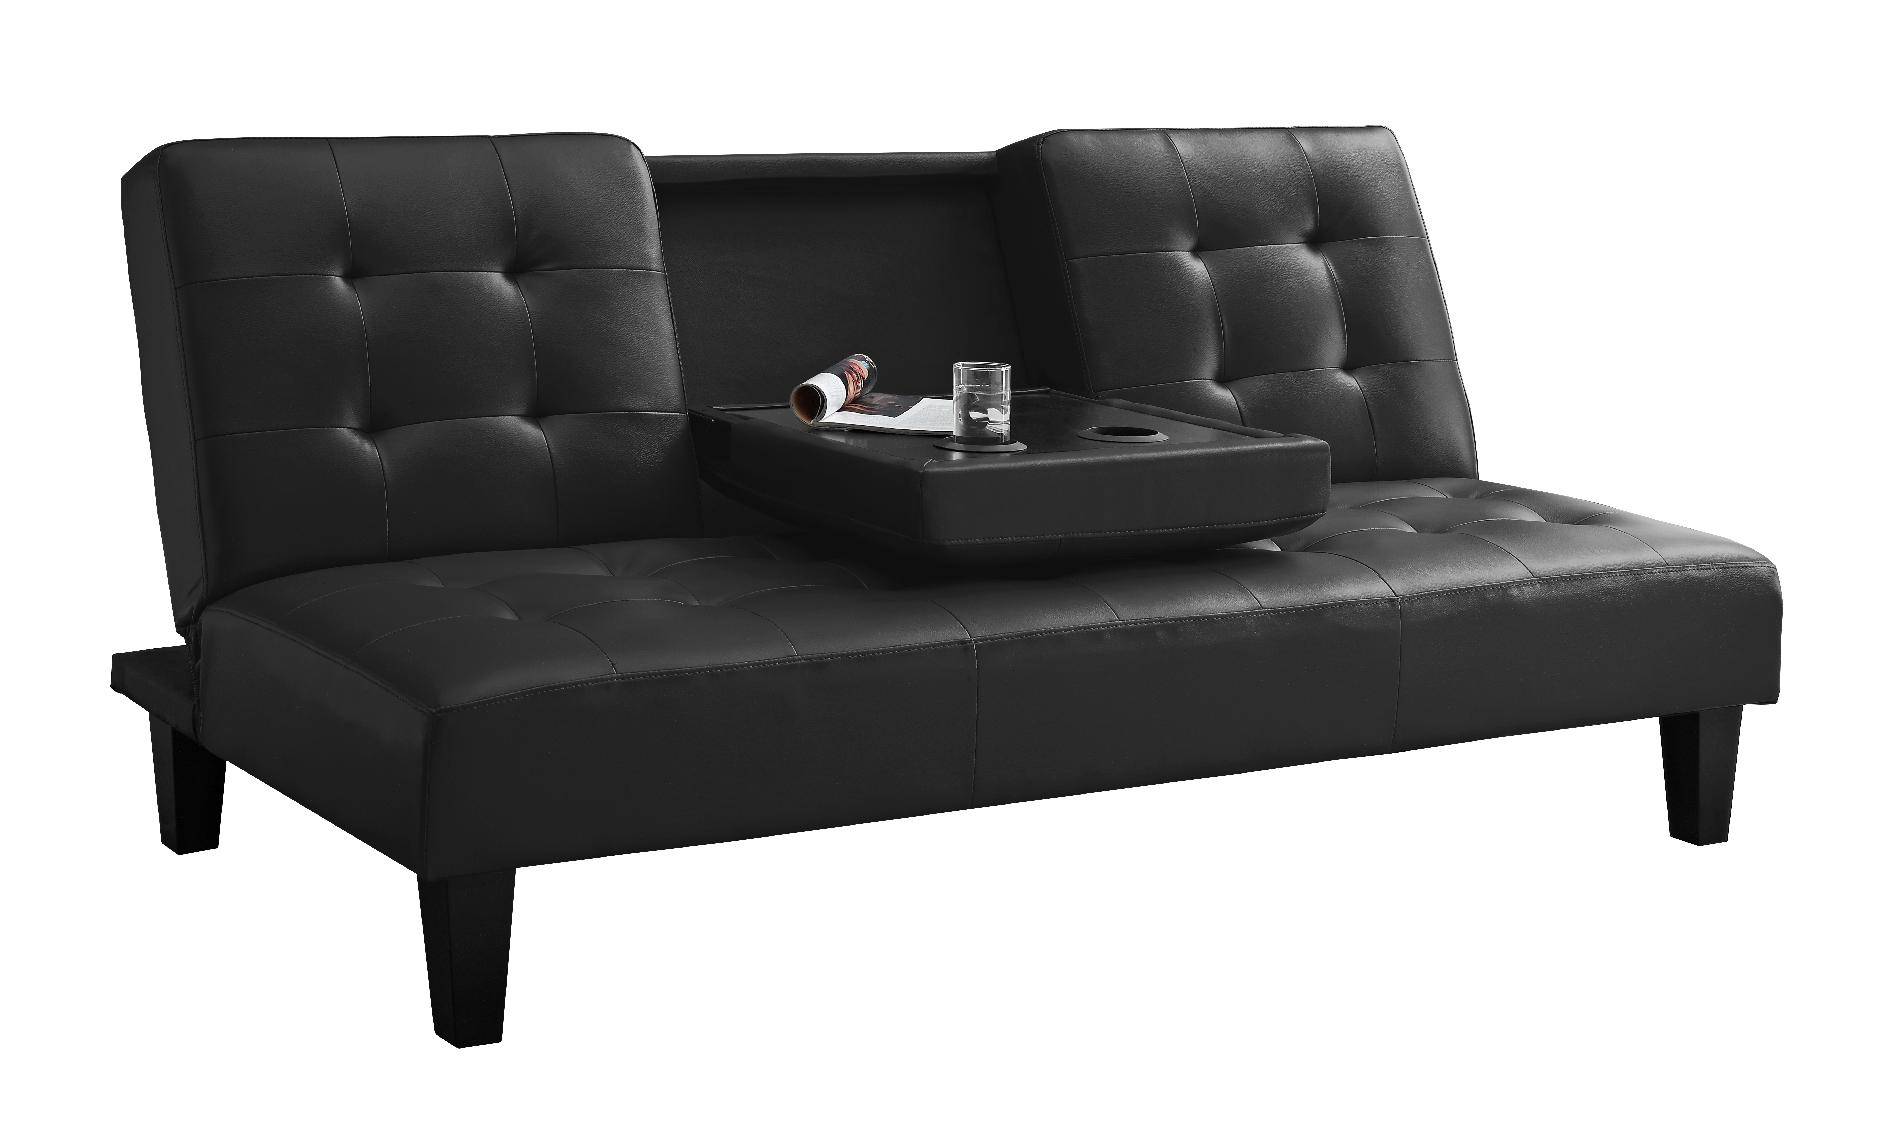 sofa armrest drink holder sherrill furniture 159 00 mainstays connectrix futon with adjustable